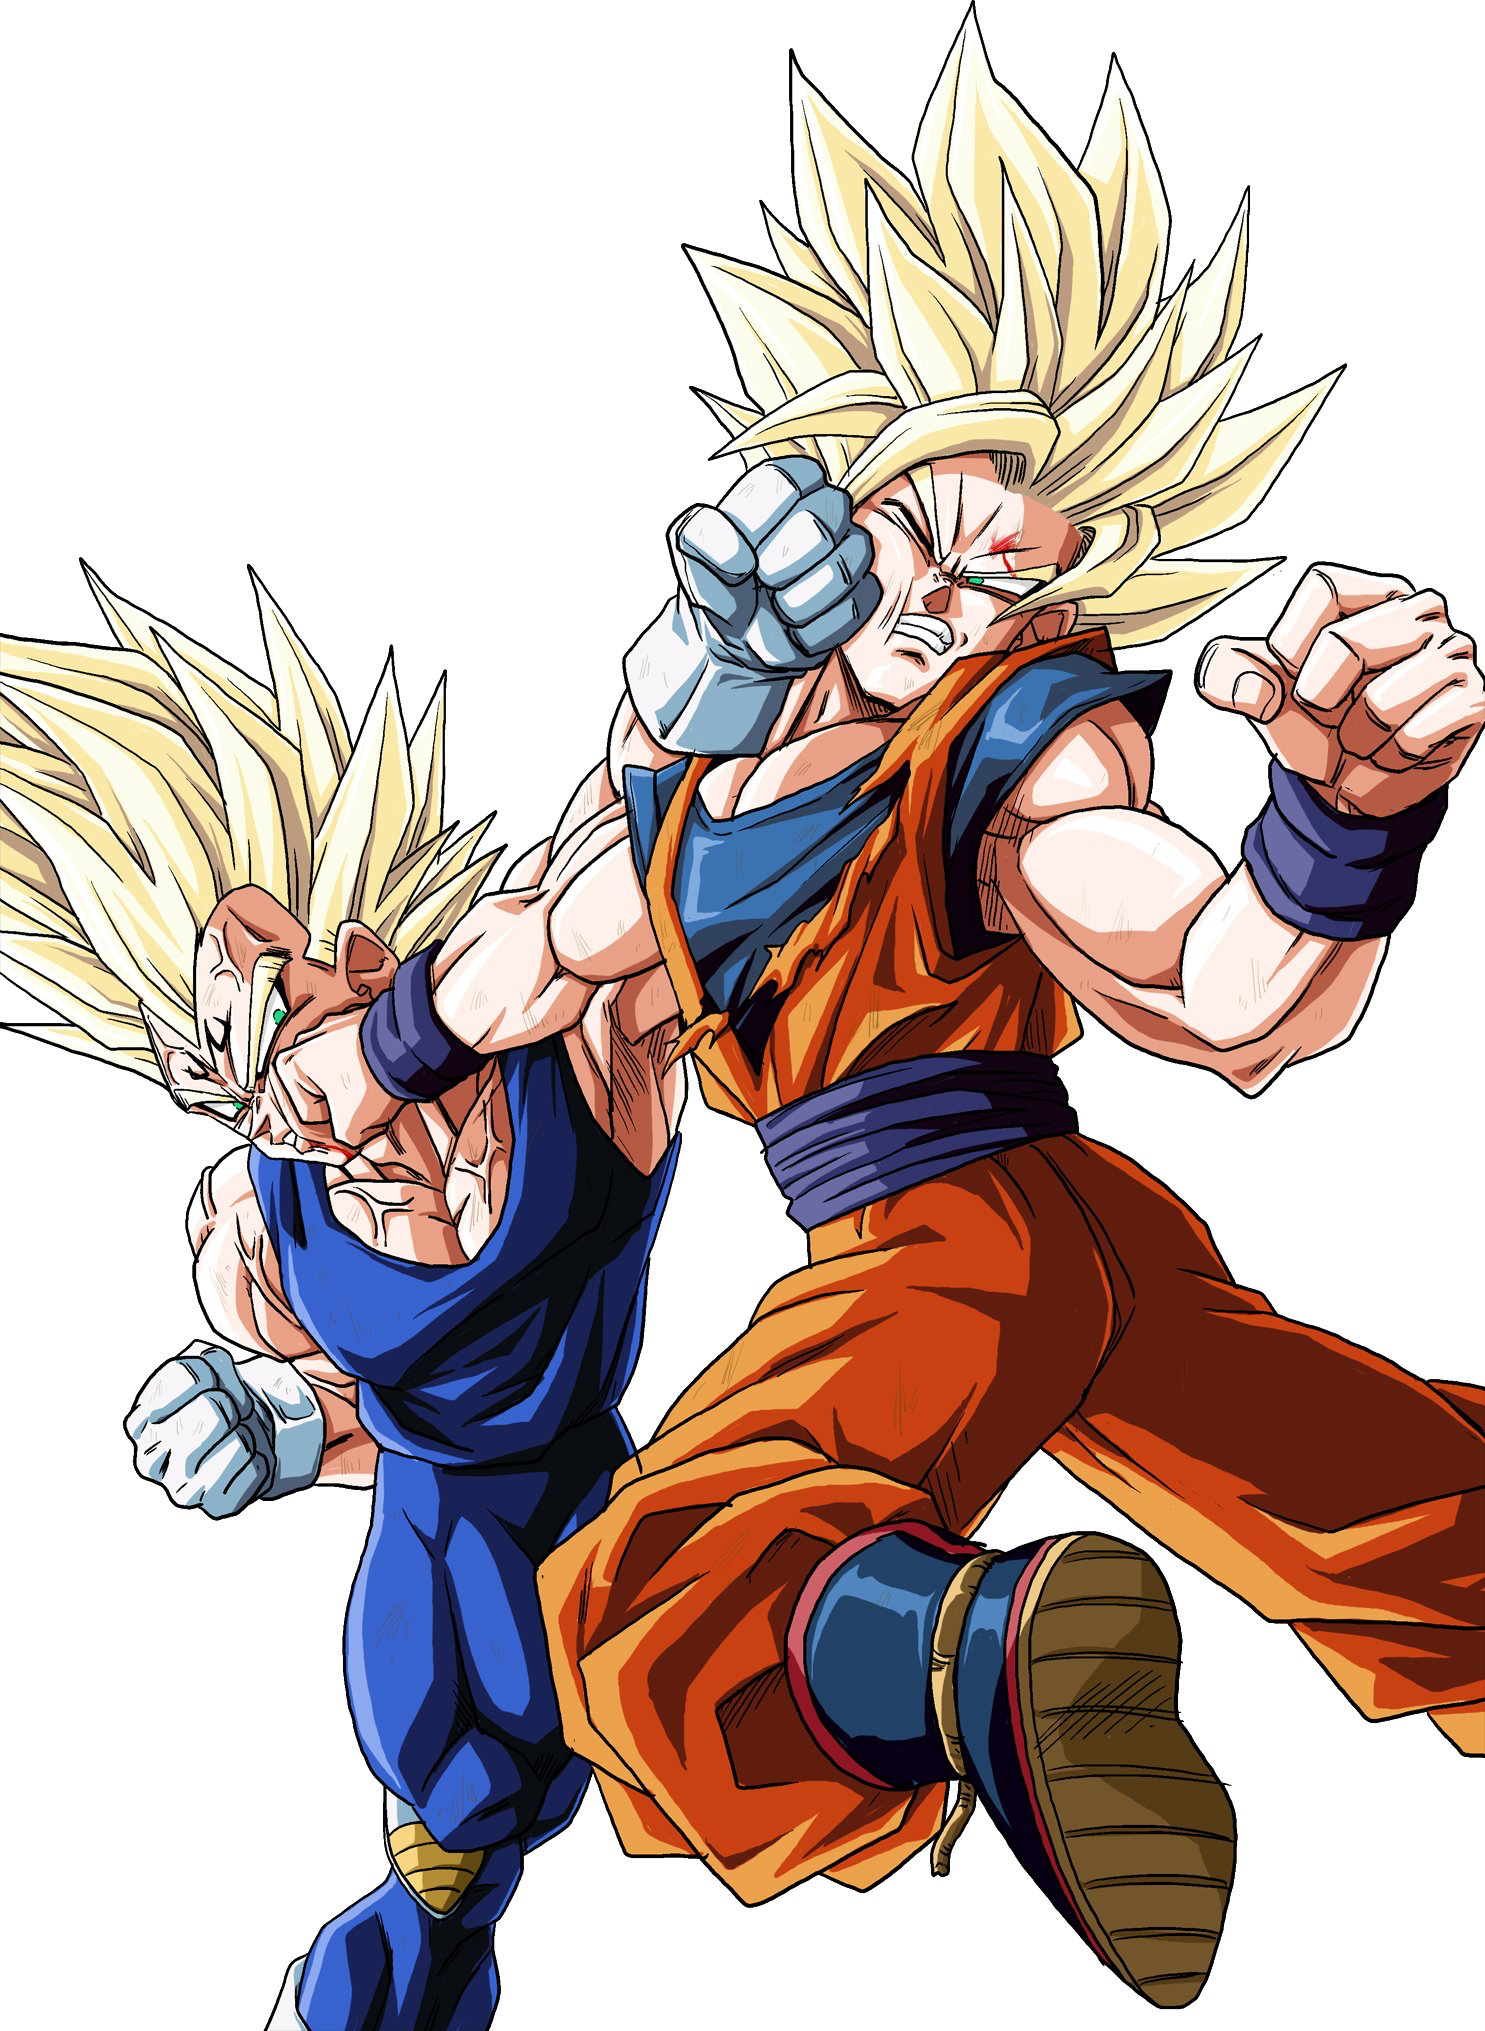 Vegetta vs goku dragon ball pinterest - Goku vs vegeta super saiyan 5 ...